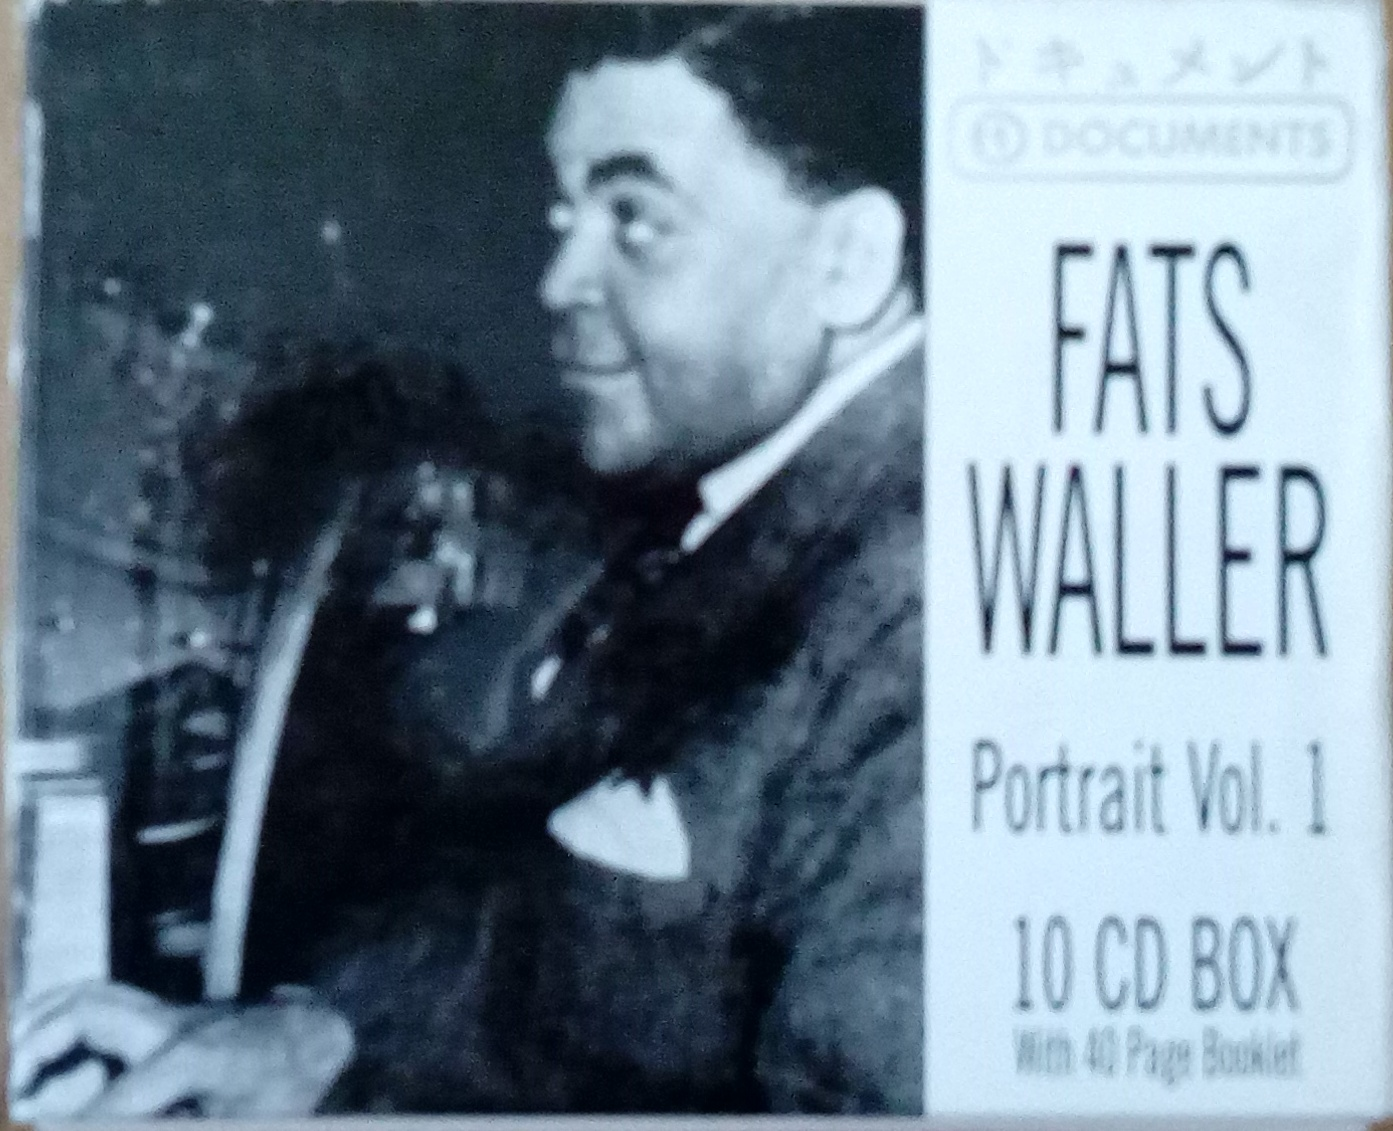 Fats Waller - Portrait Vol. 2 - 10CD